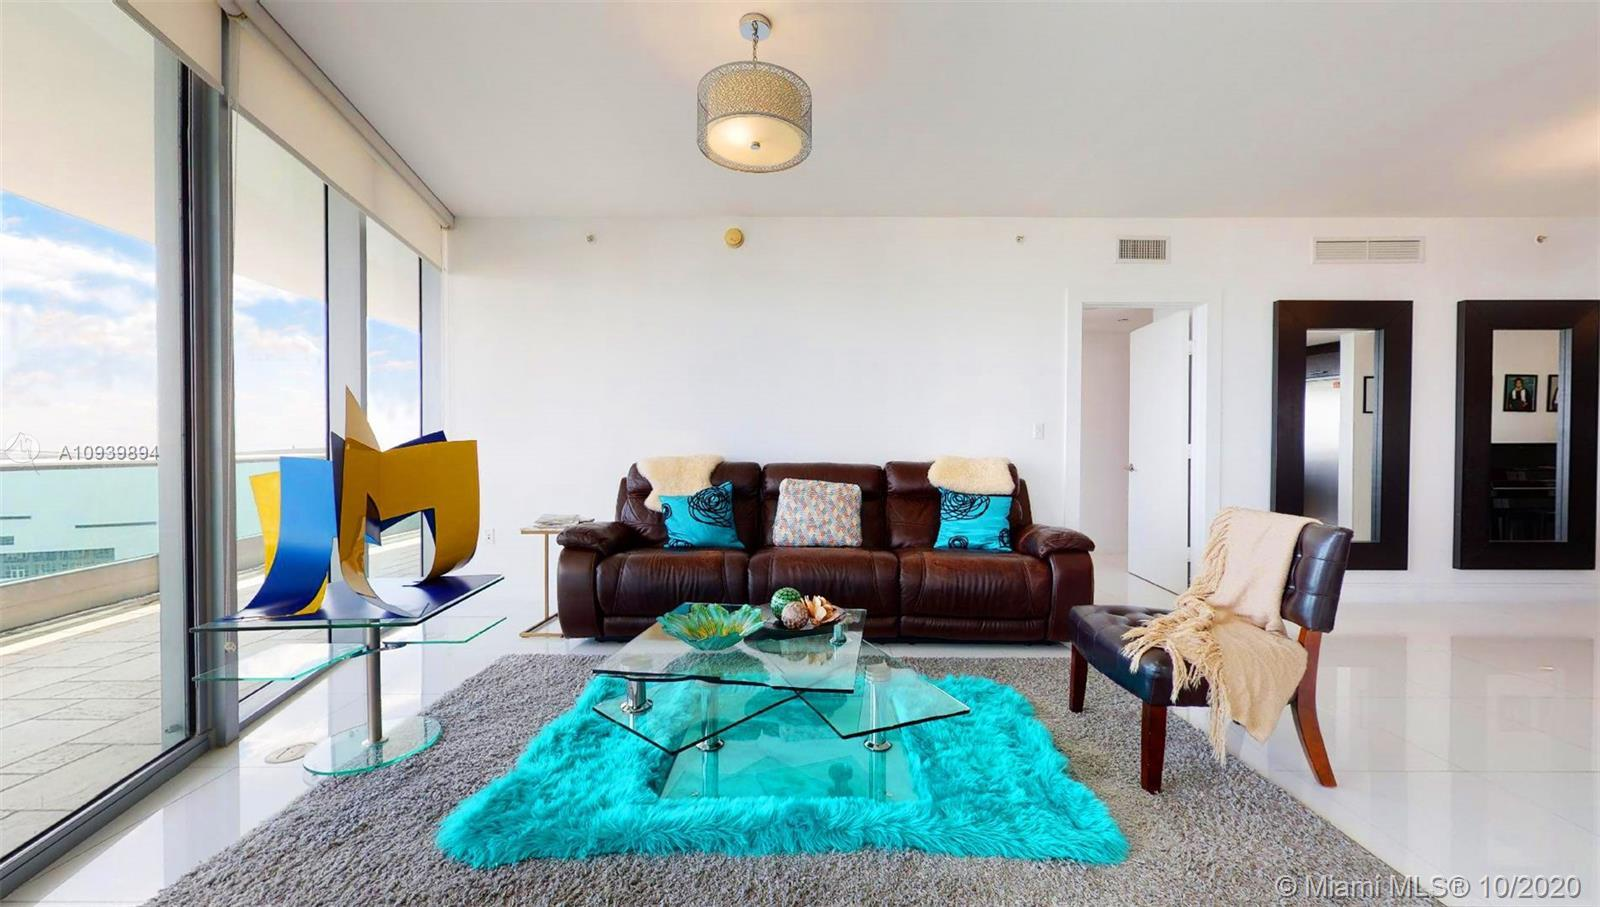 Wake up to stunning direct water views of Biscayne Bay. This Luxury Condo 3 Bed + Den, 4 Bath in the